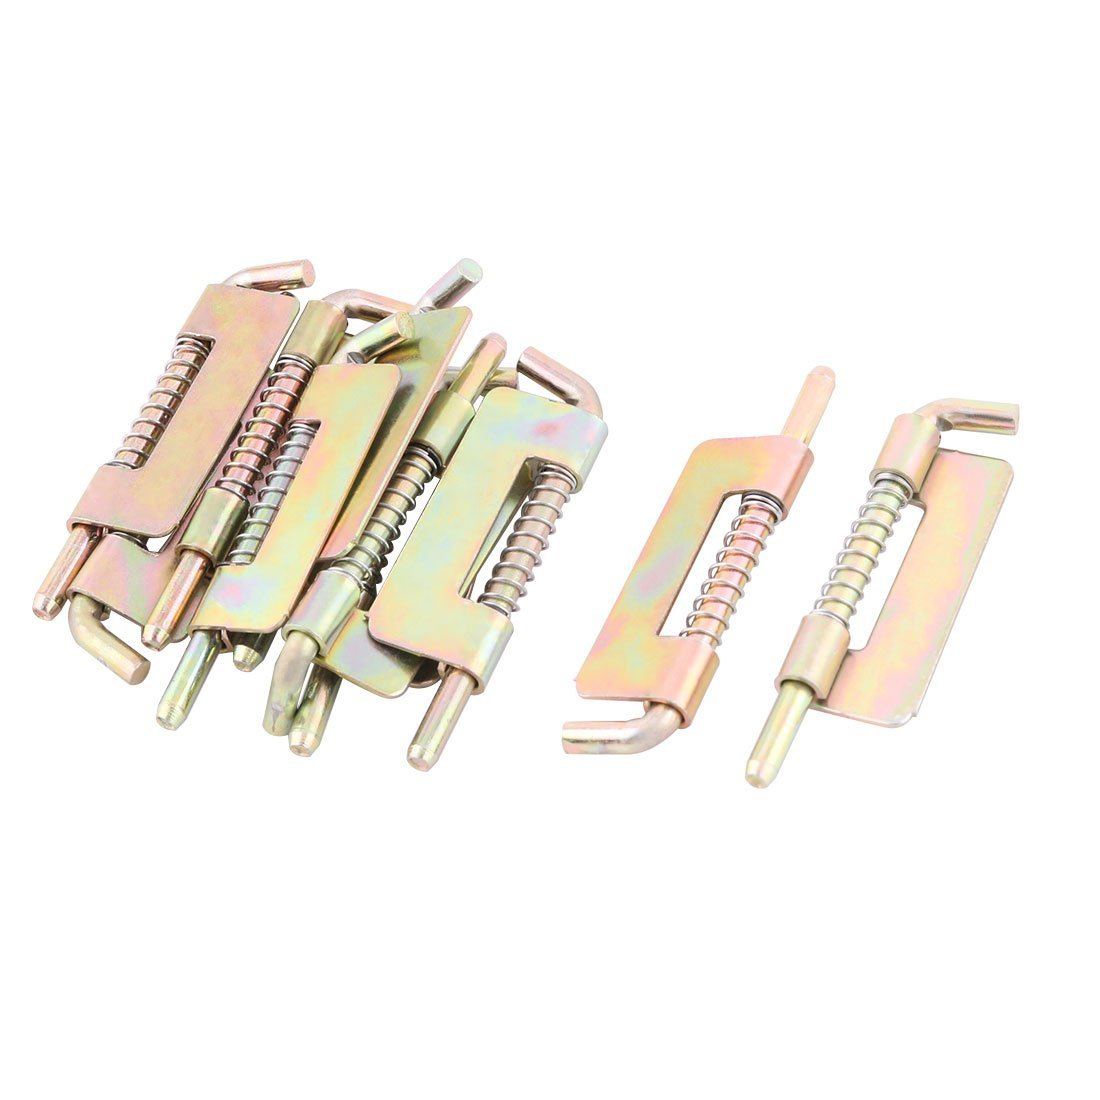 Stainless Steel Hotel Furniture Gate Spring Latch 2.9 Inch Length 10 Pcs Colorful